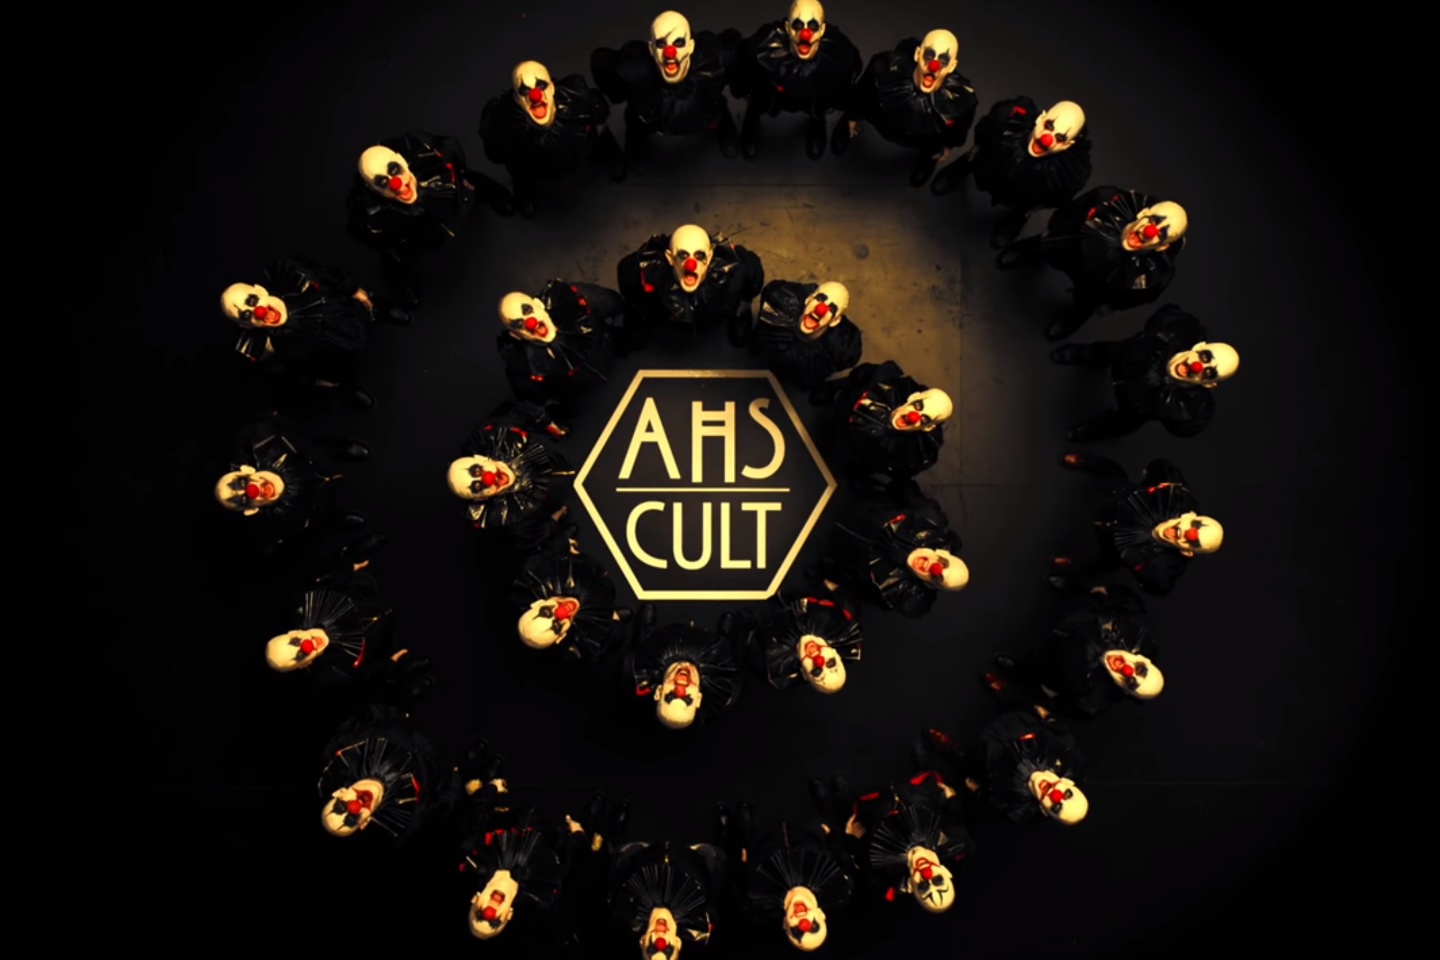 American Horror Story: Cult's debut episode had chills, thrills, and a very dark tone driven by current events.